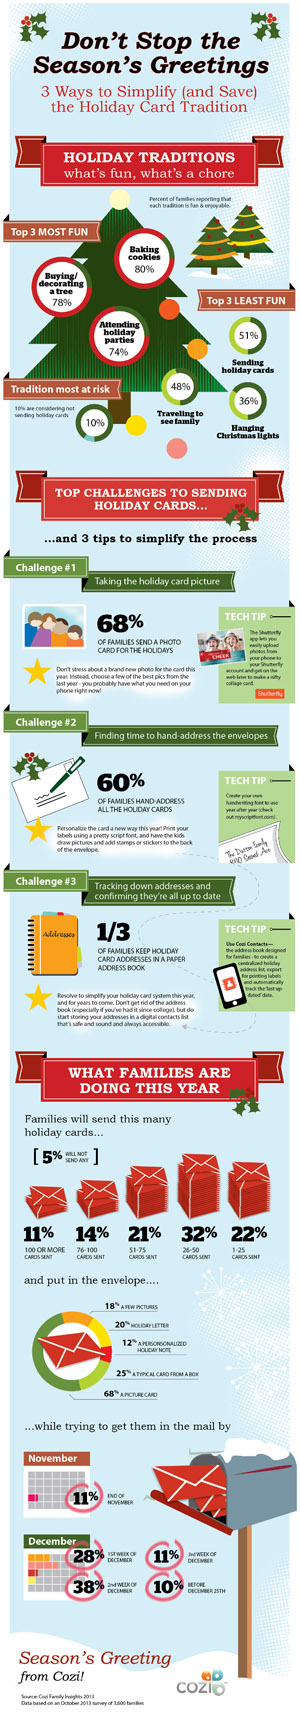 Holiday Card Infographic